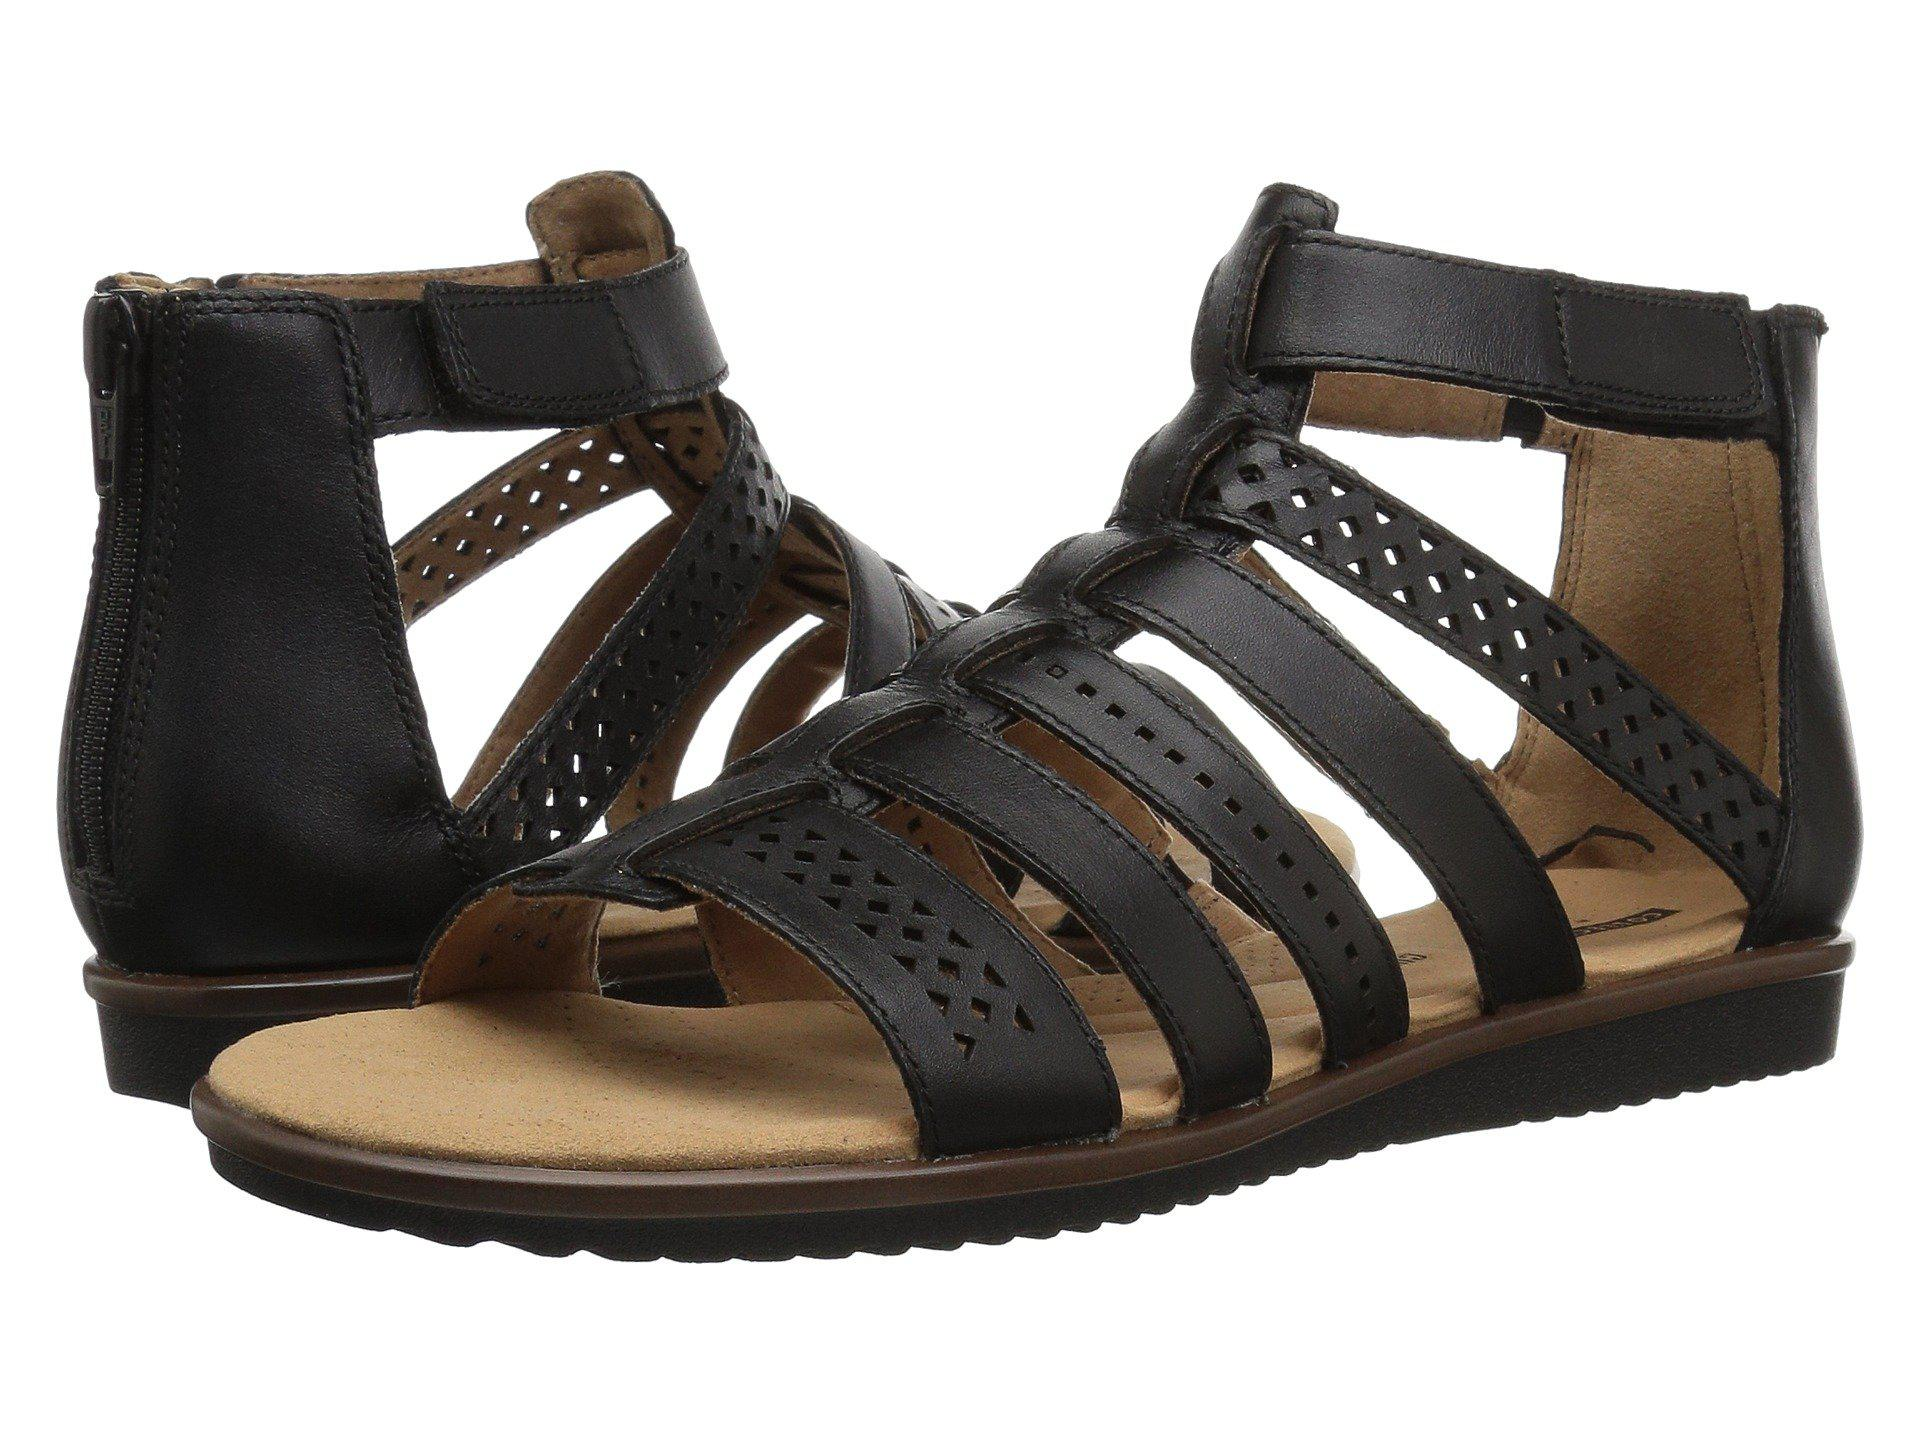 49e72449872b Lyst - Clarks Kele Lotus Gladiator Sandal in Black - Save 60%